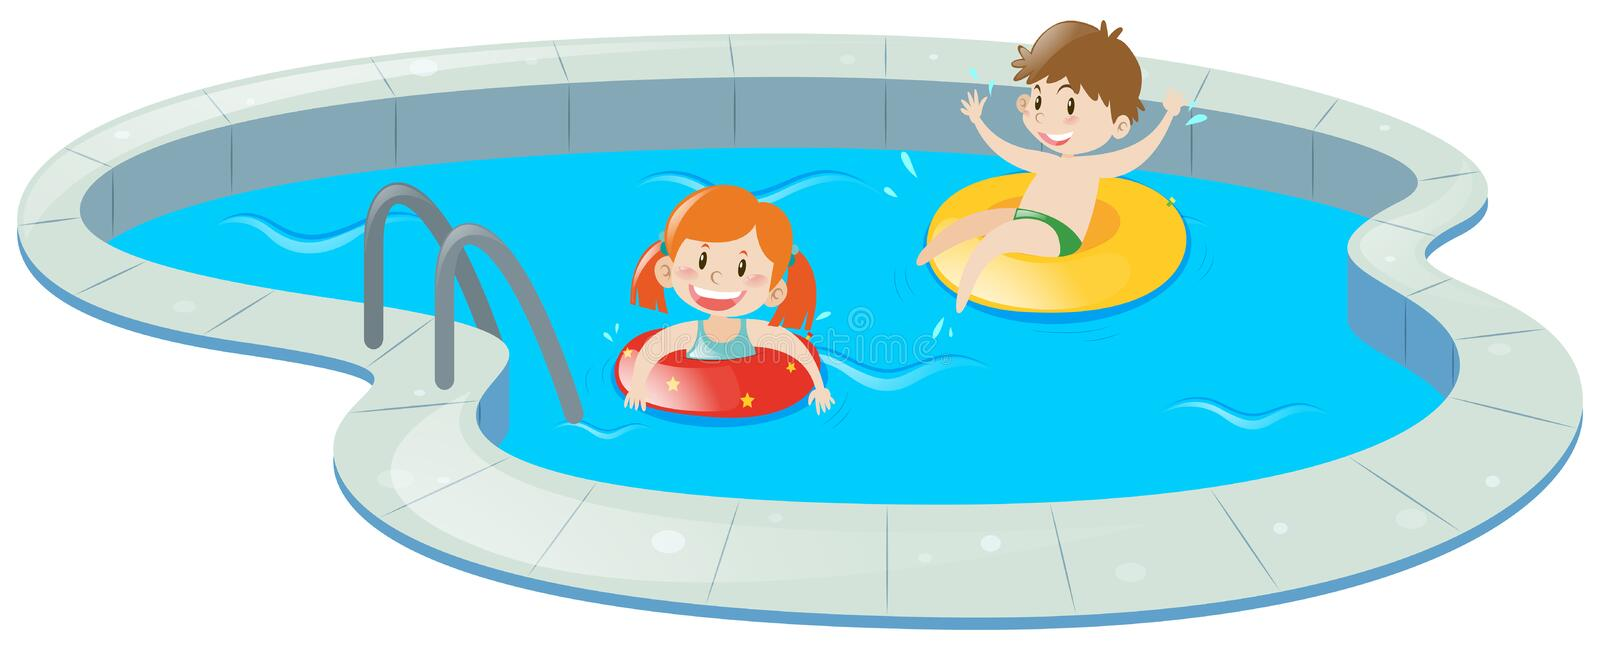 Two kids in swimming pool. Illustration royalty free illustration